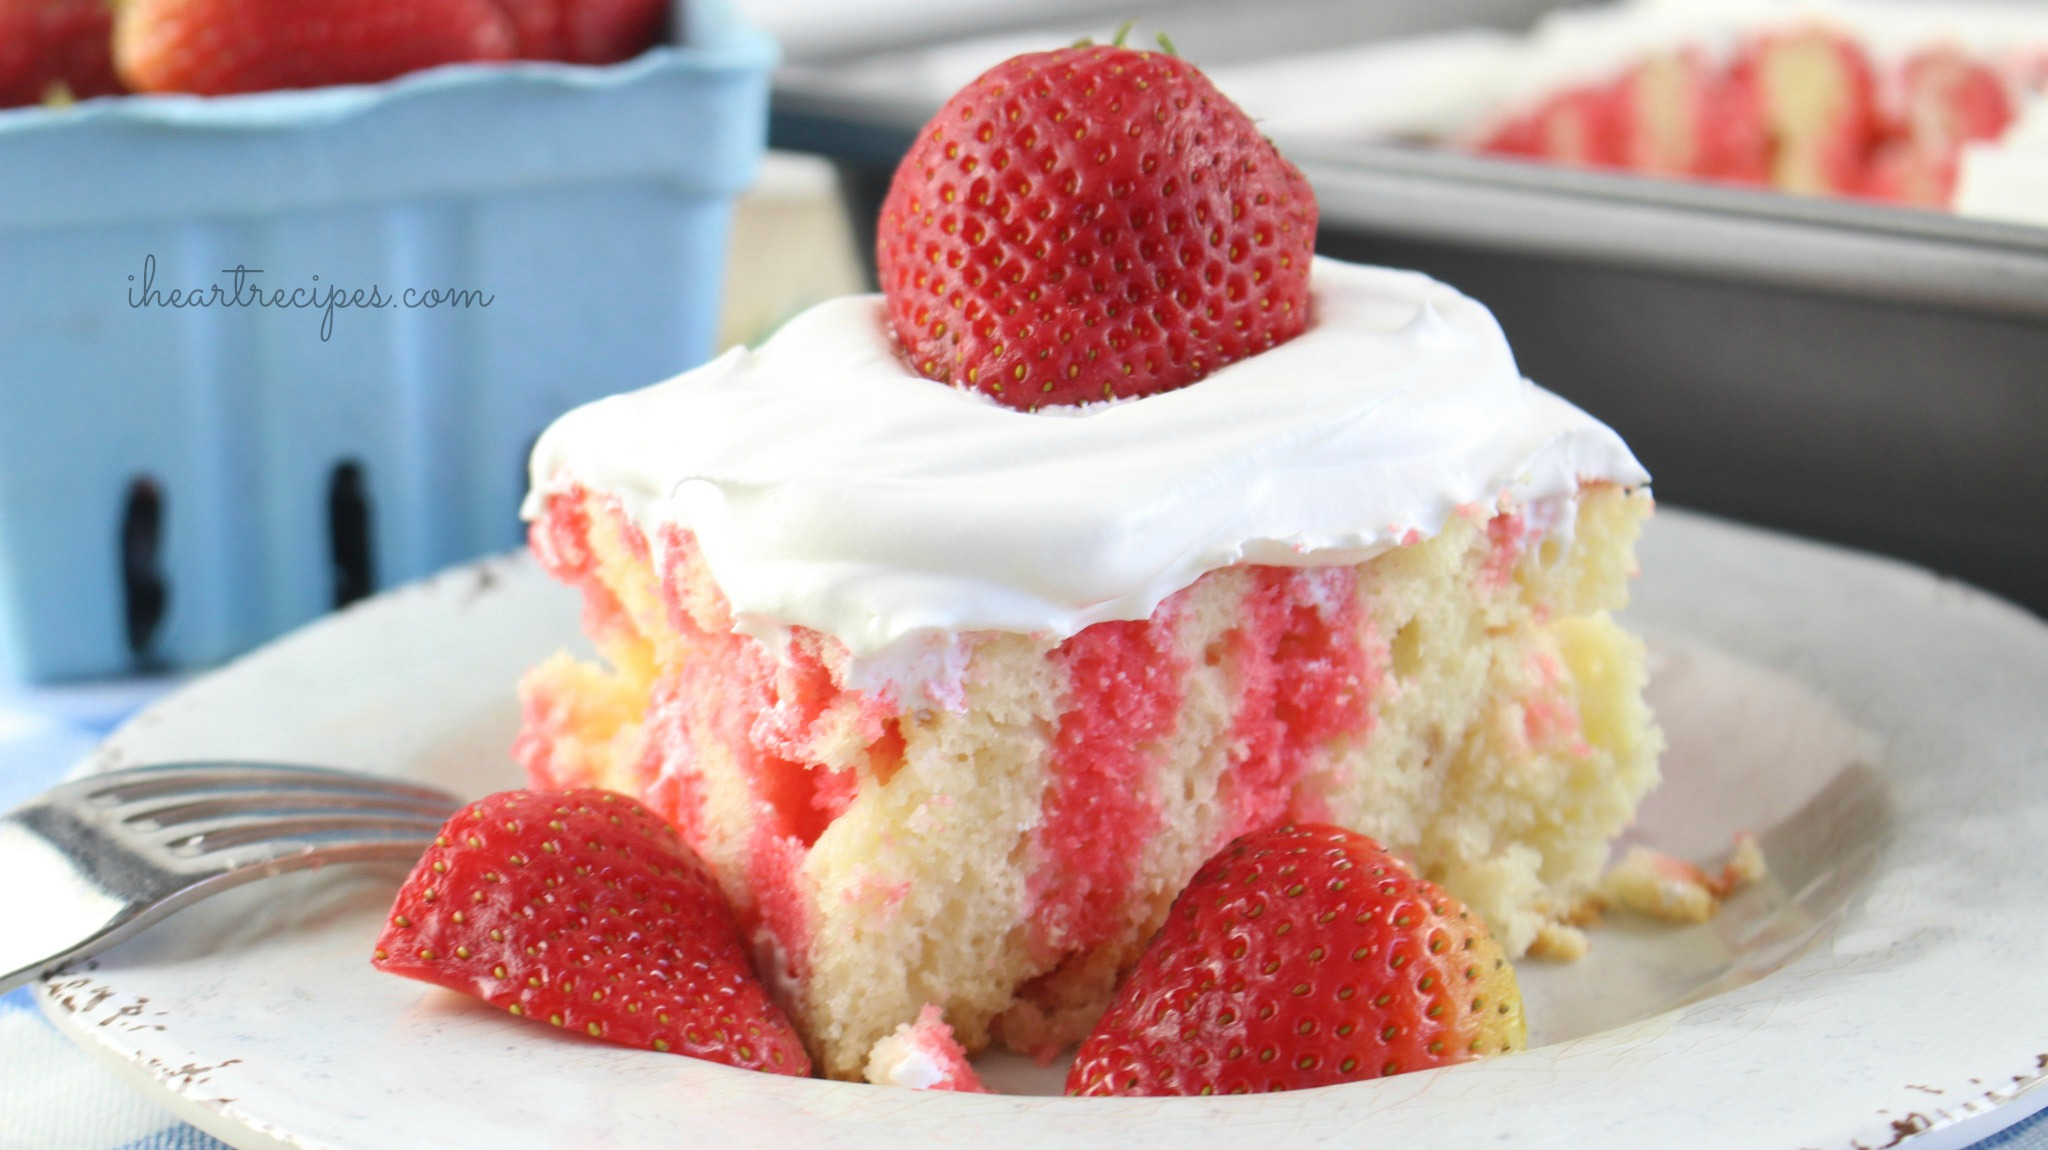 Topped with a sweet whipped cream, this strawberry poke cake is a refreshing treat